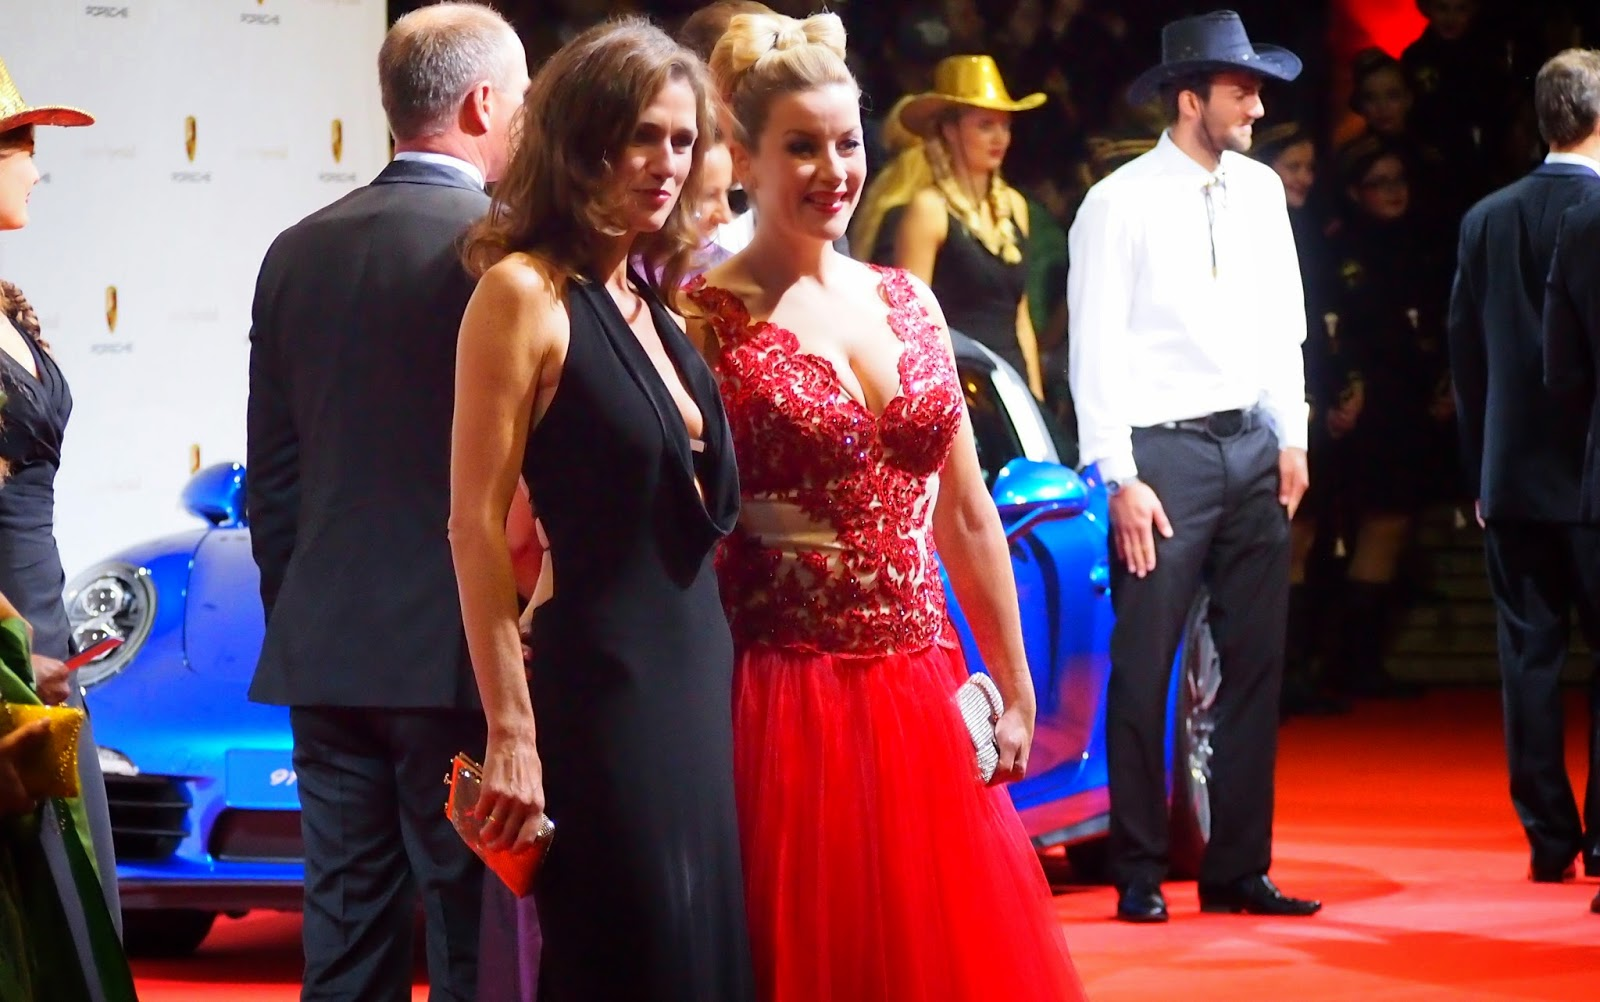 Leipziger Opernball 2014: Roter Teppich - The Fashionable Blog